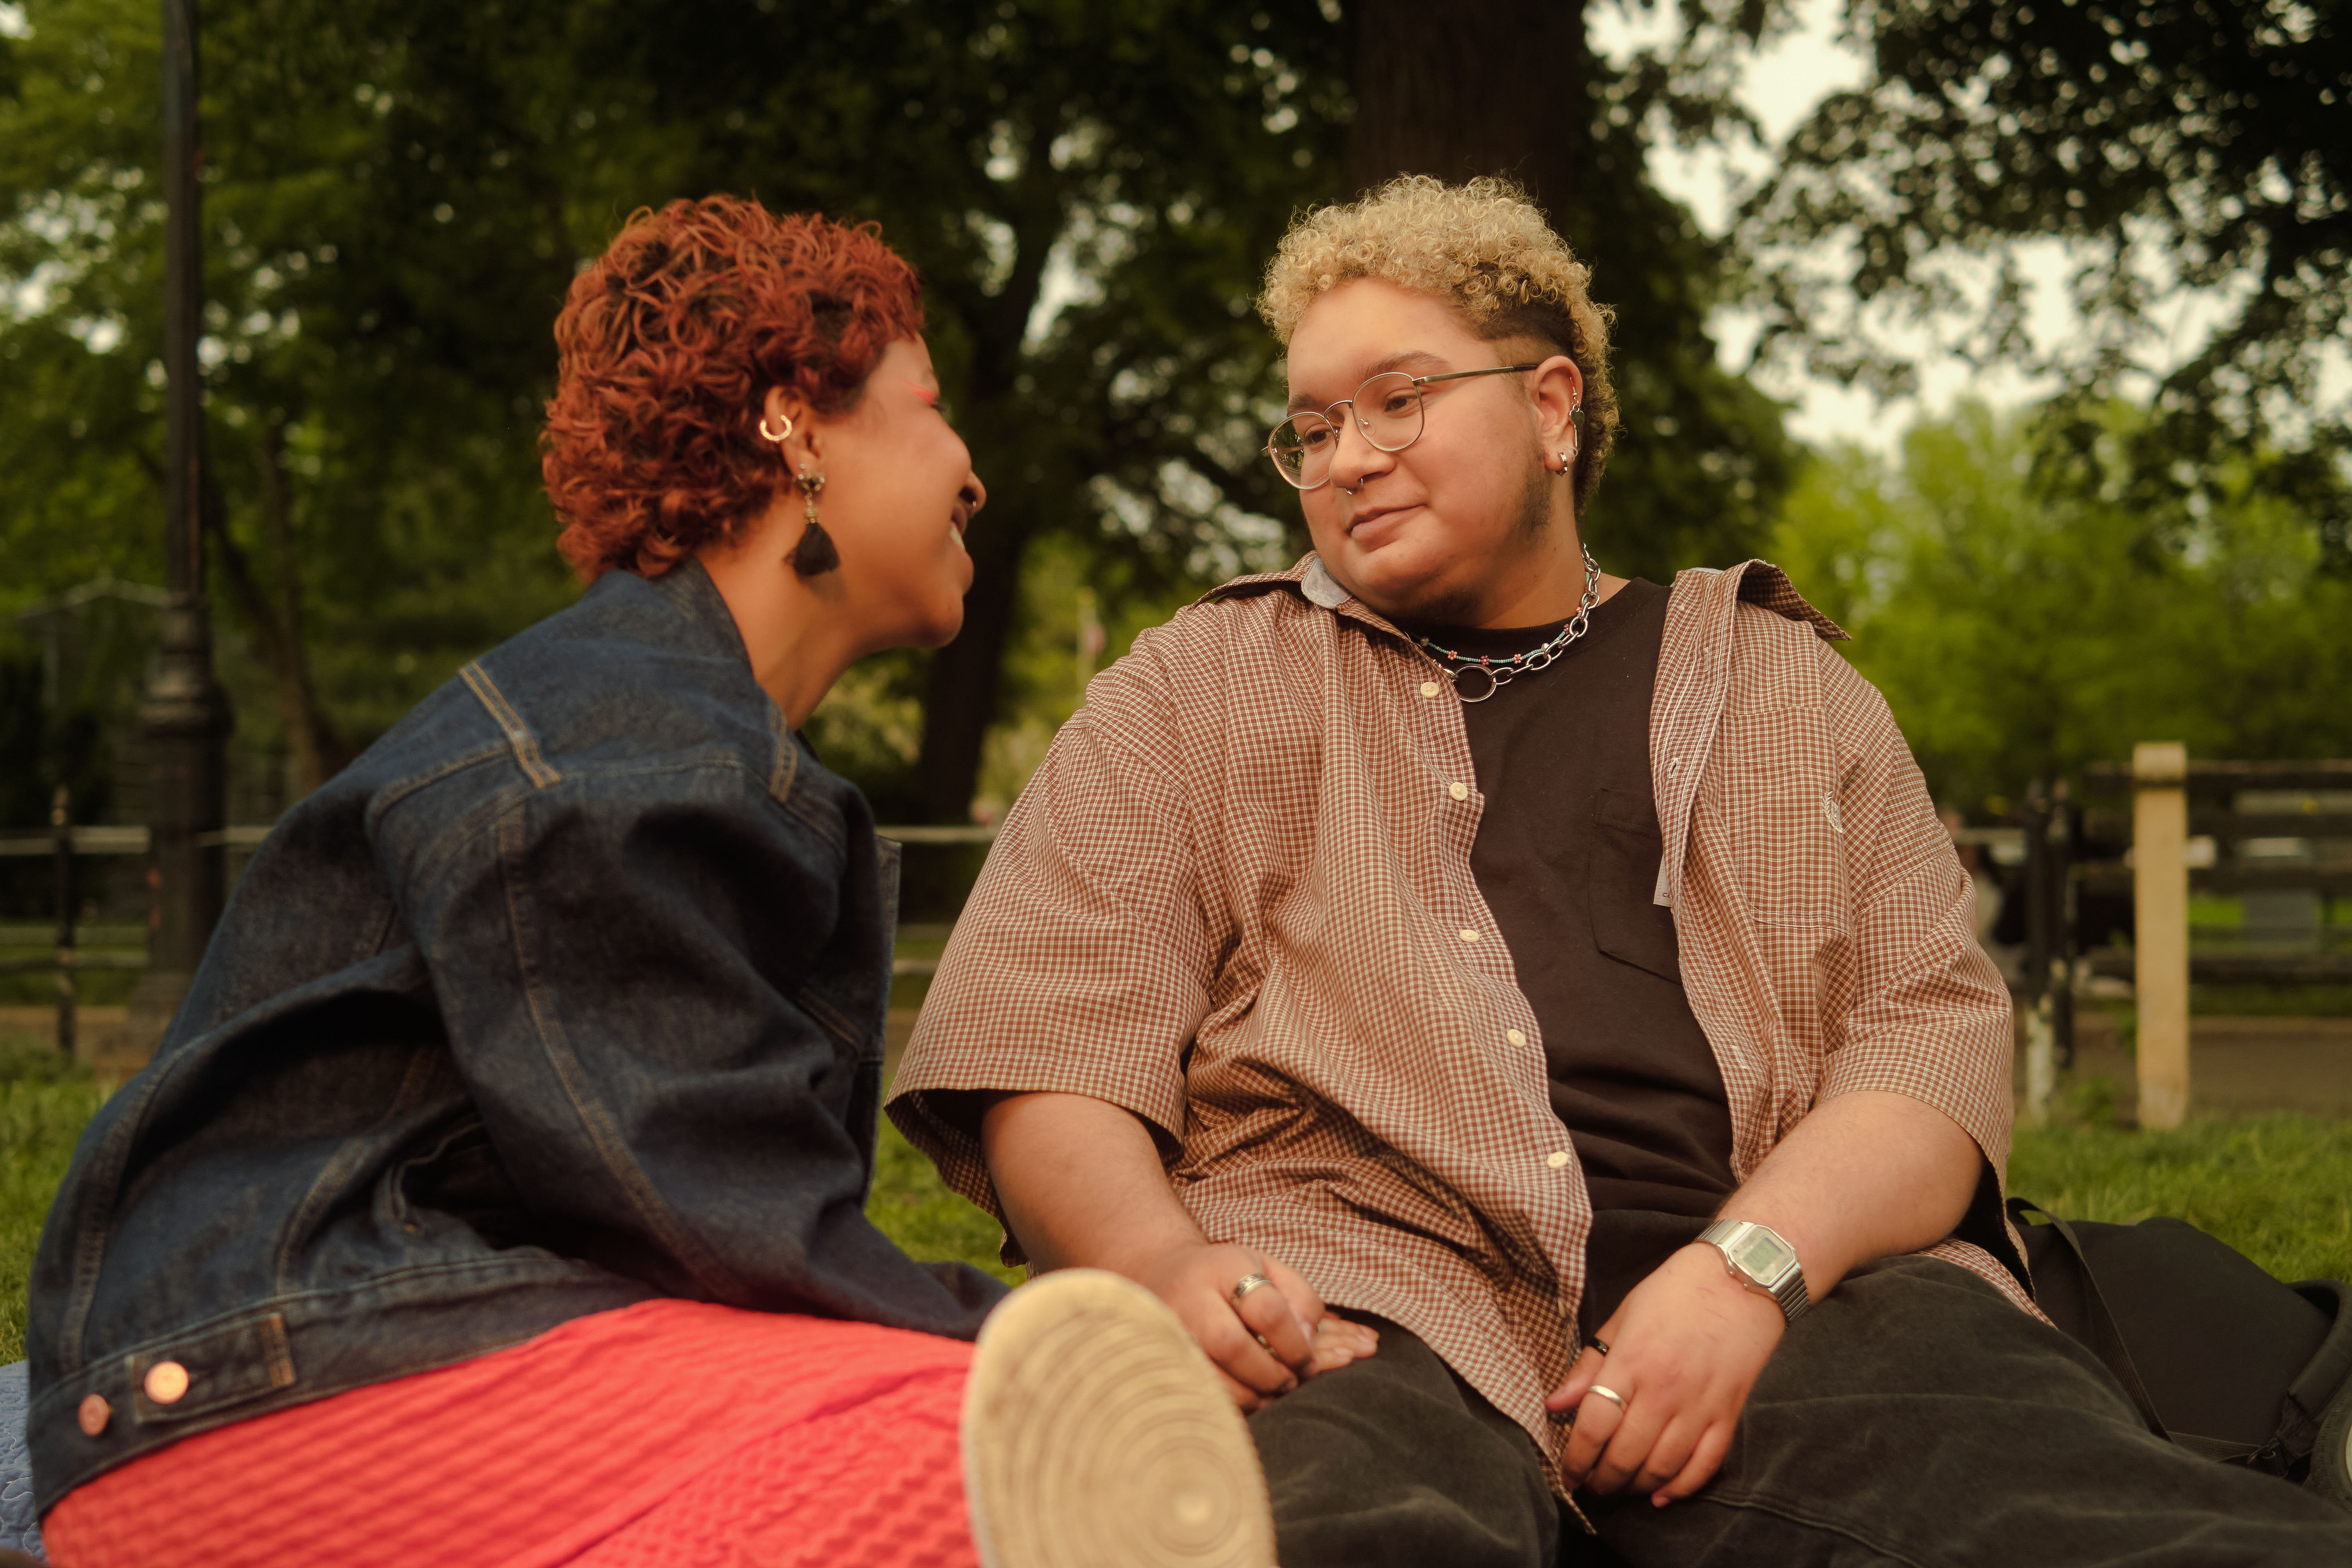 A trans couple sharing a moment in the park